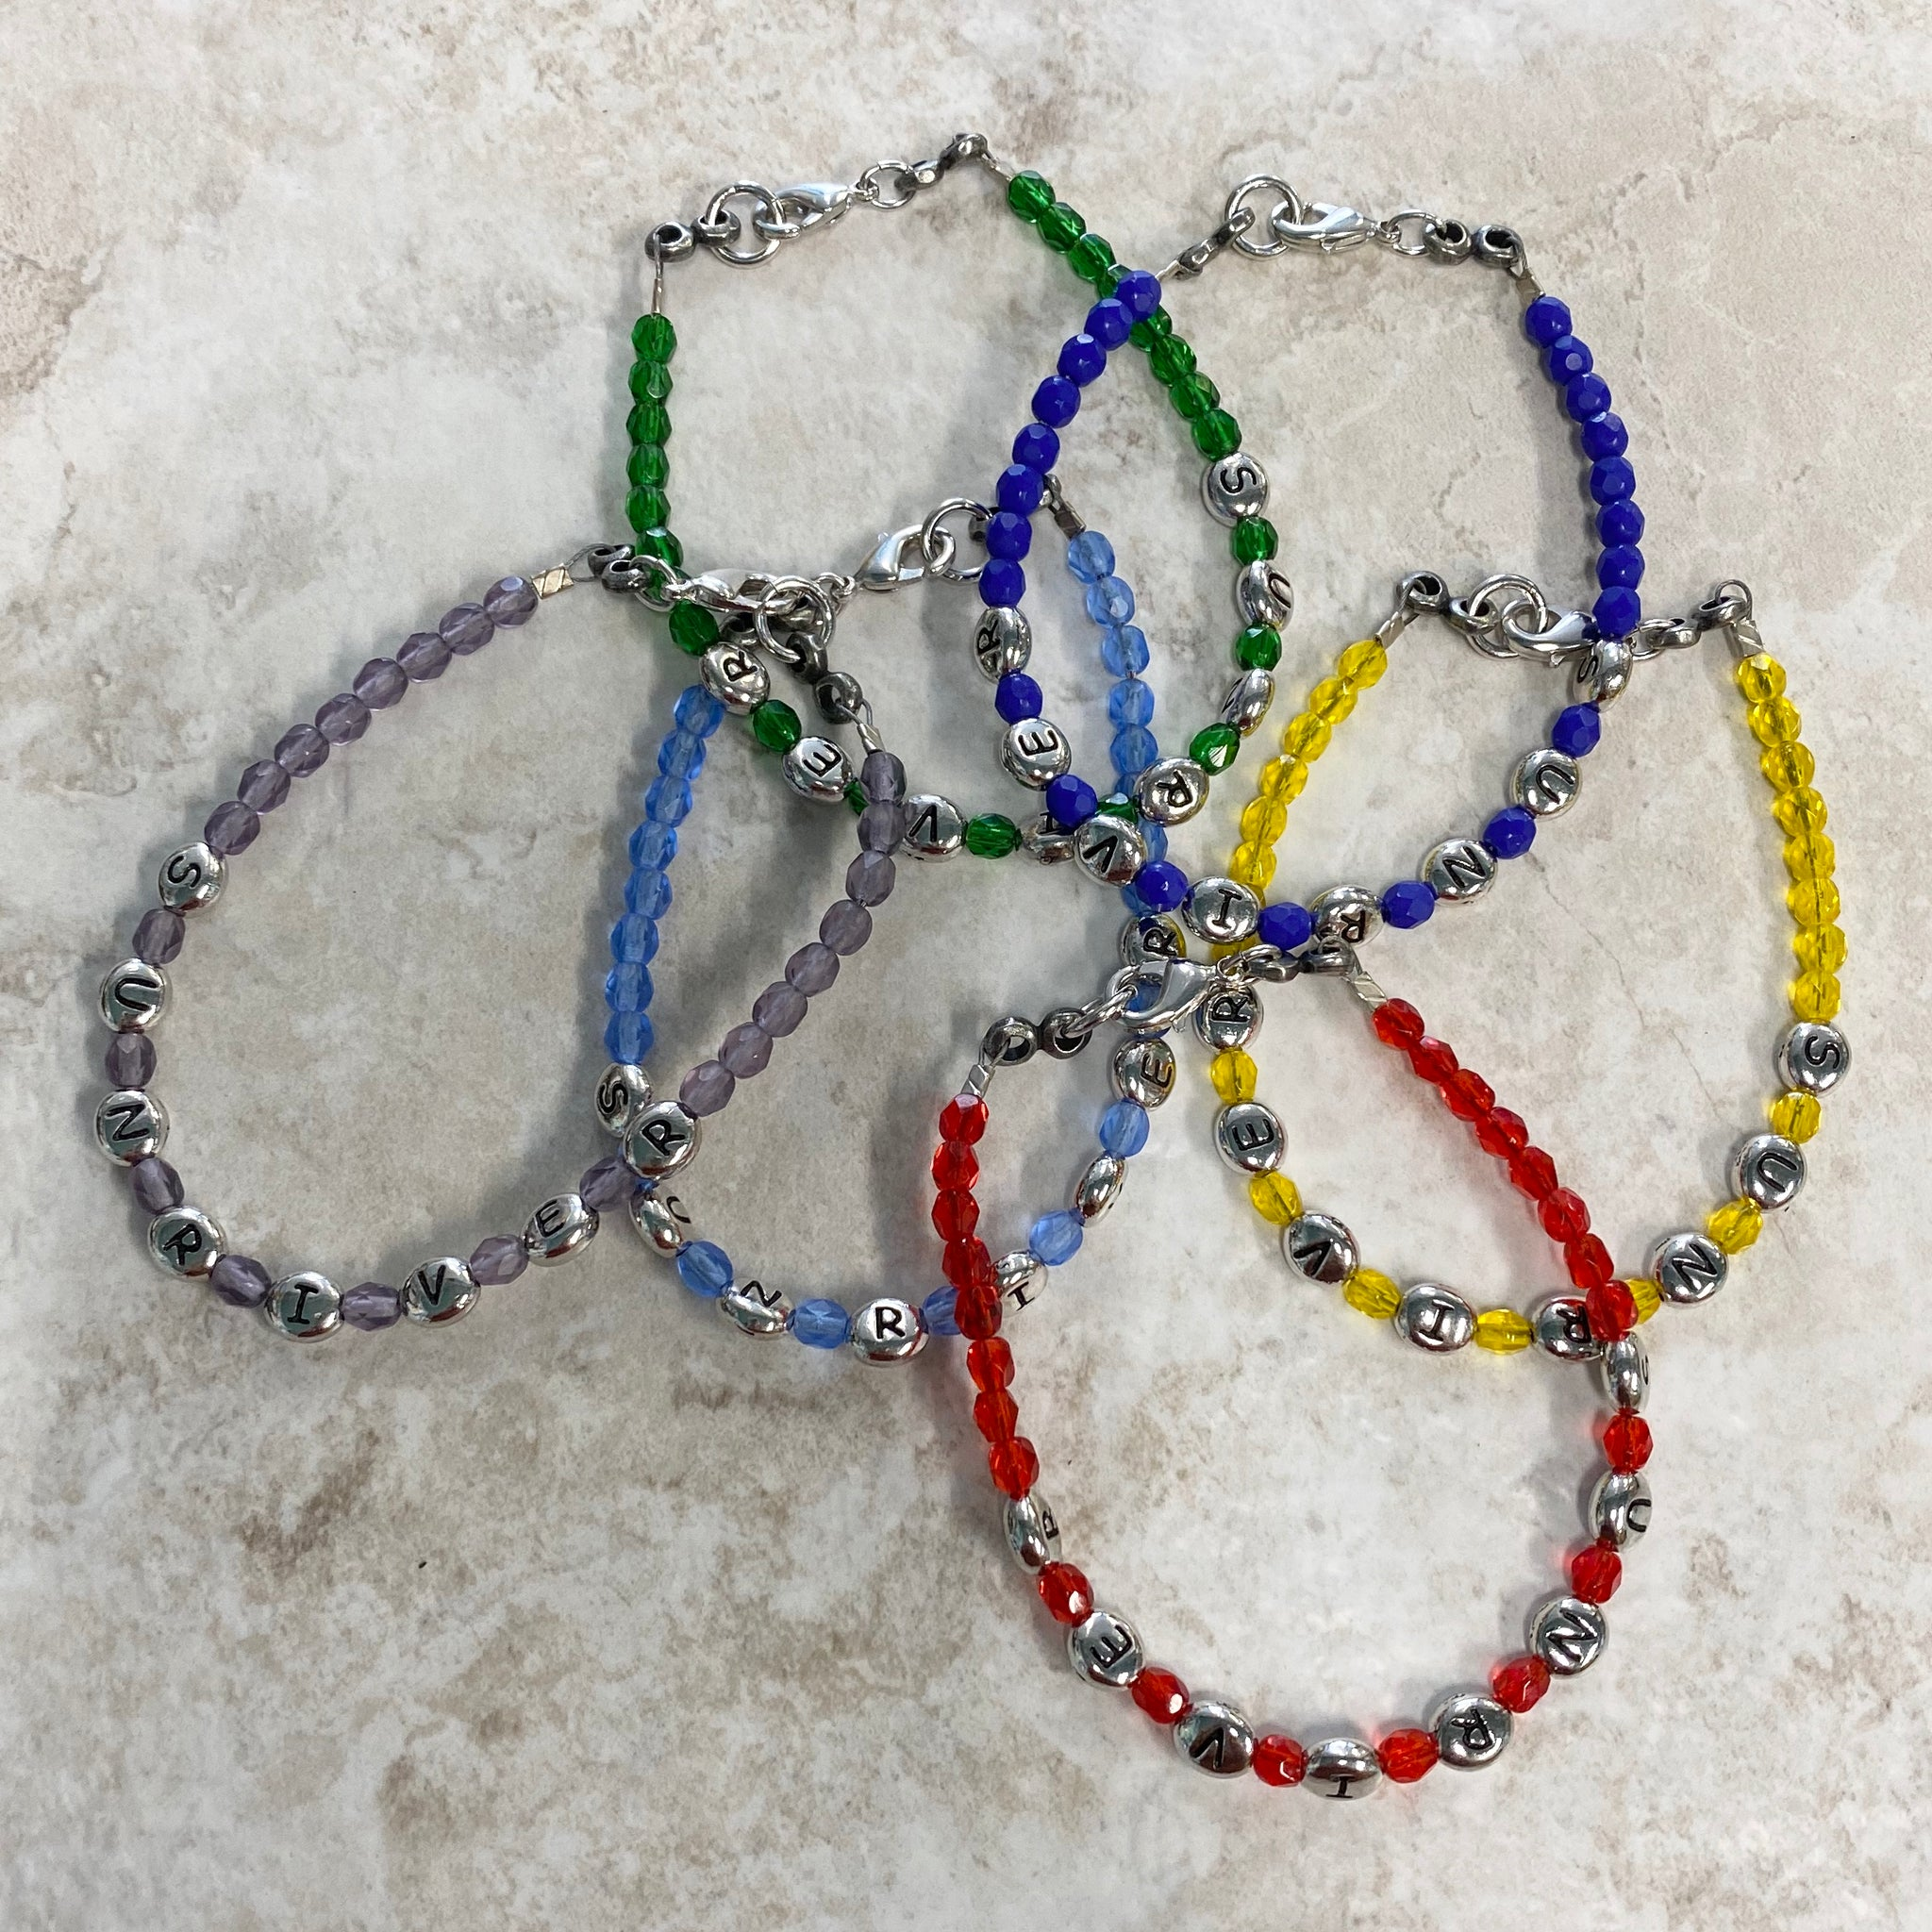 Sunriver Beaded Bracelet for Charms